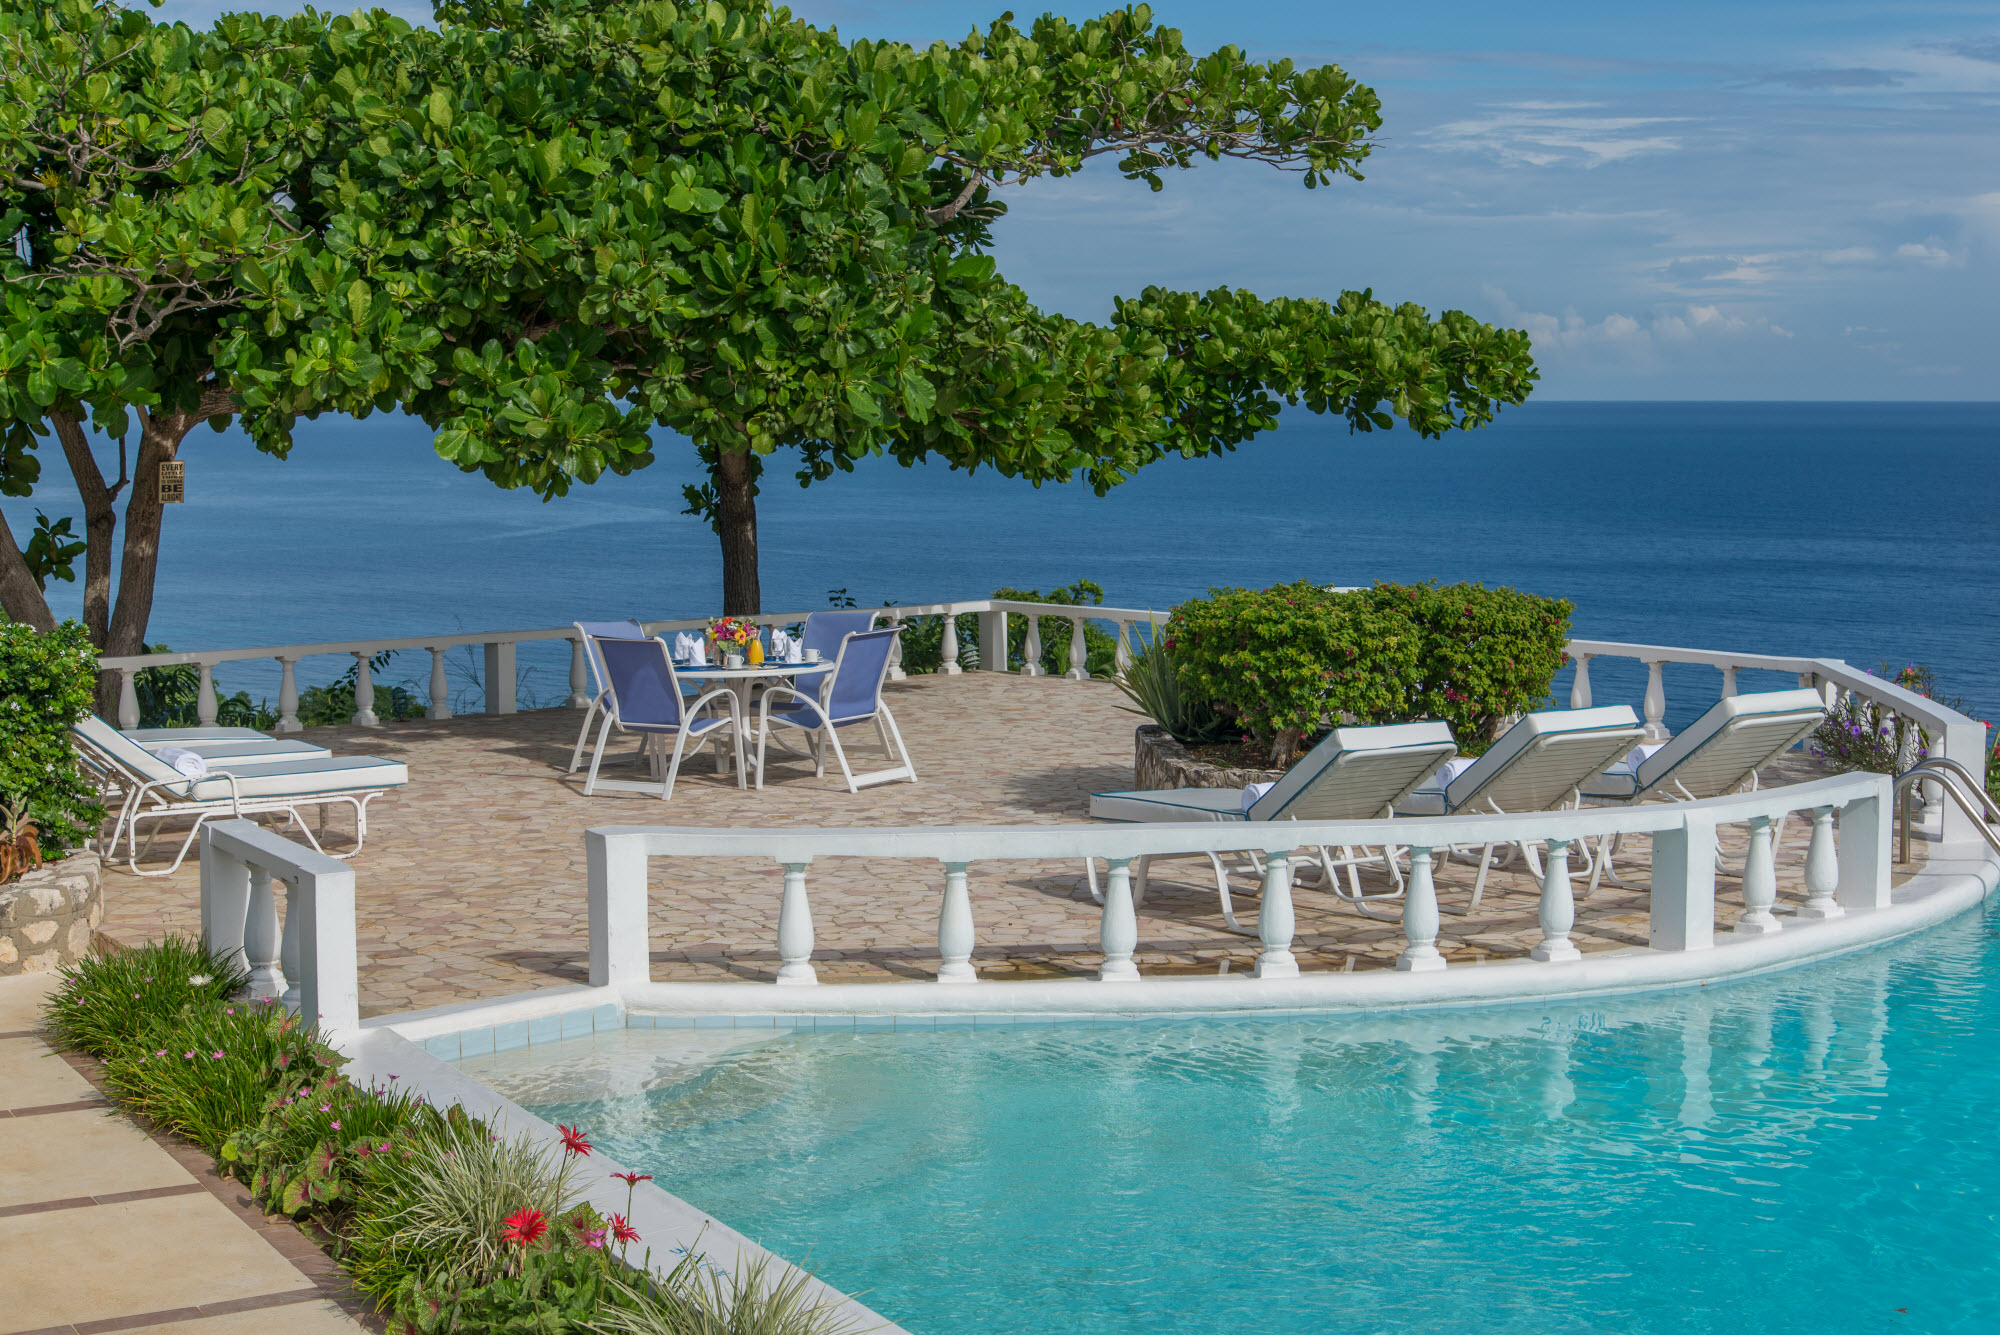 Win a villa vacation in jamaica with villas of distinction for Distinctive villas